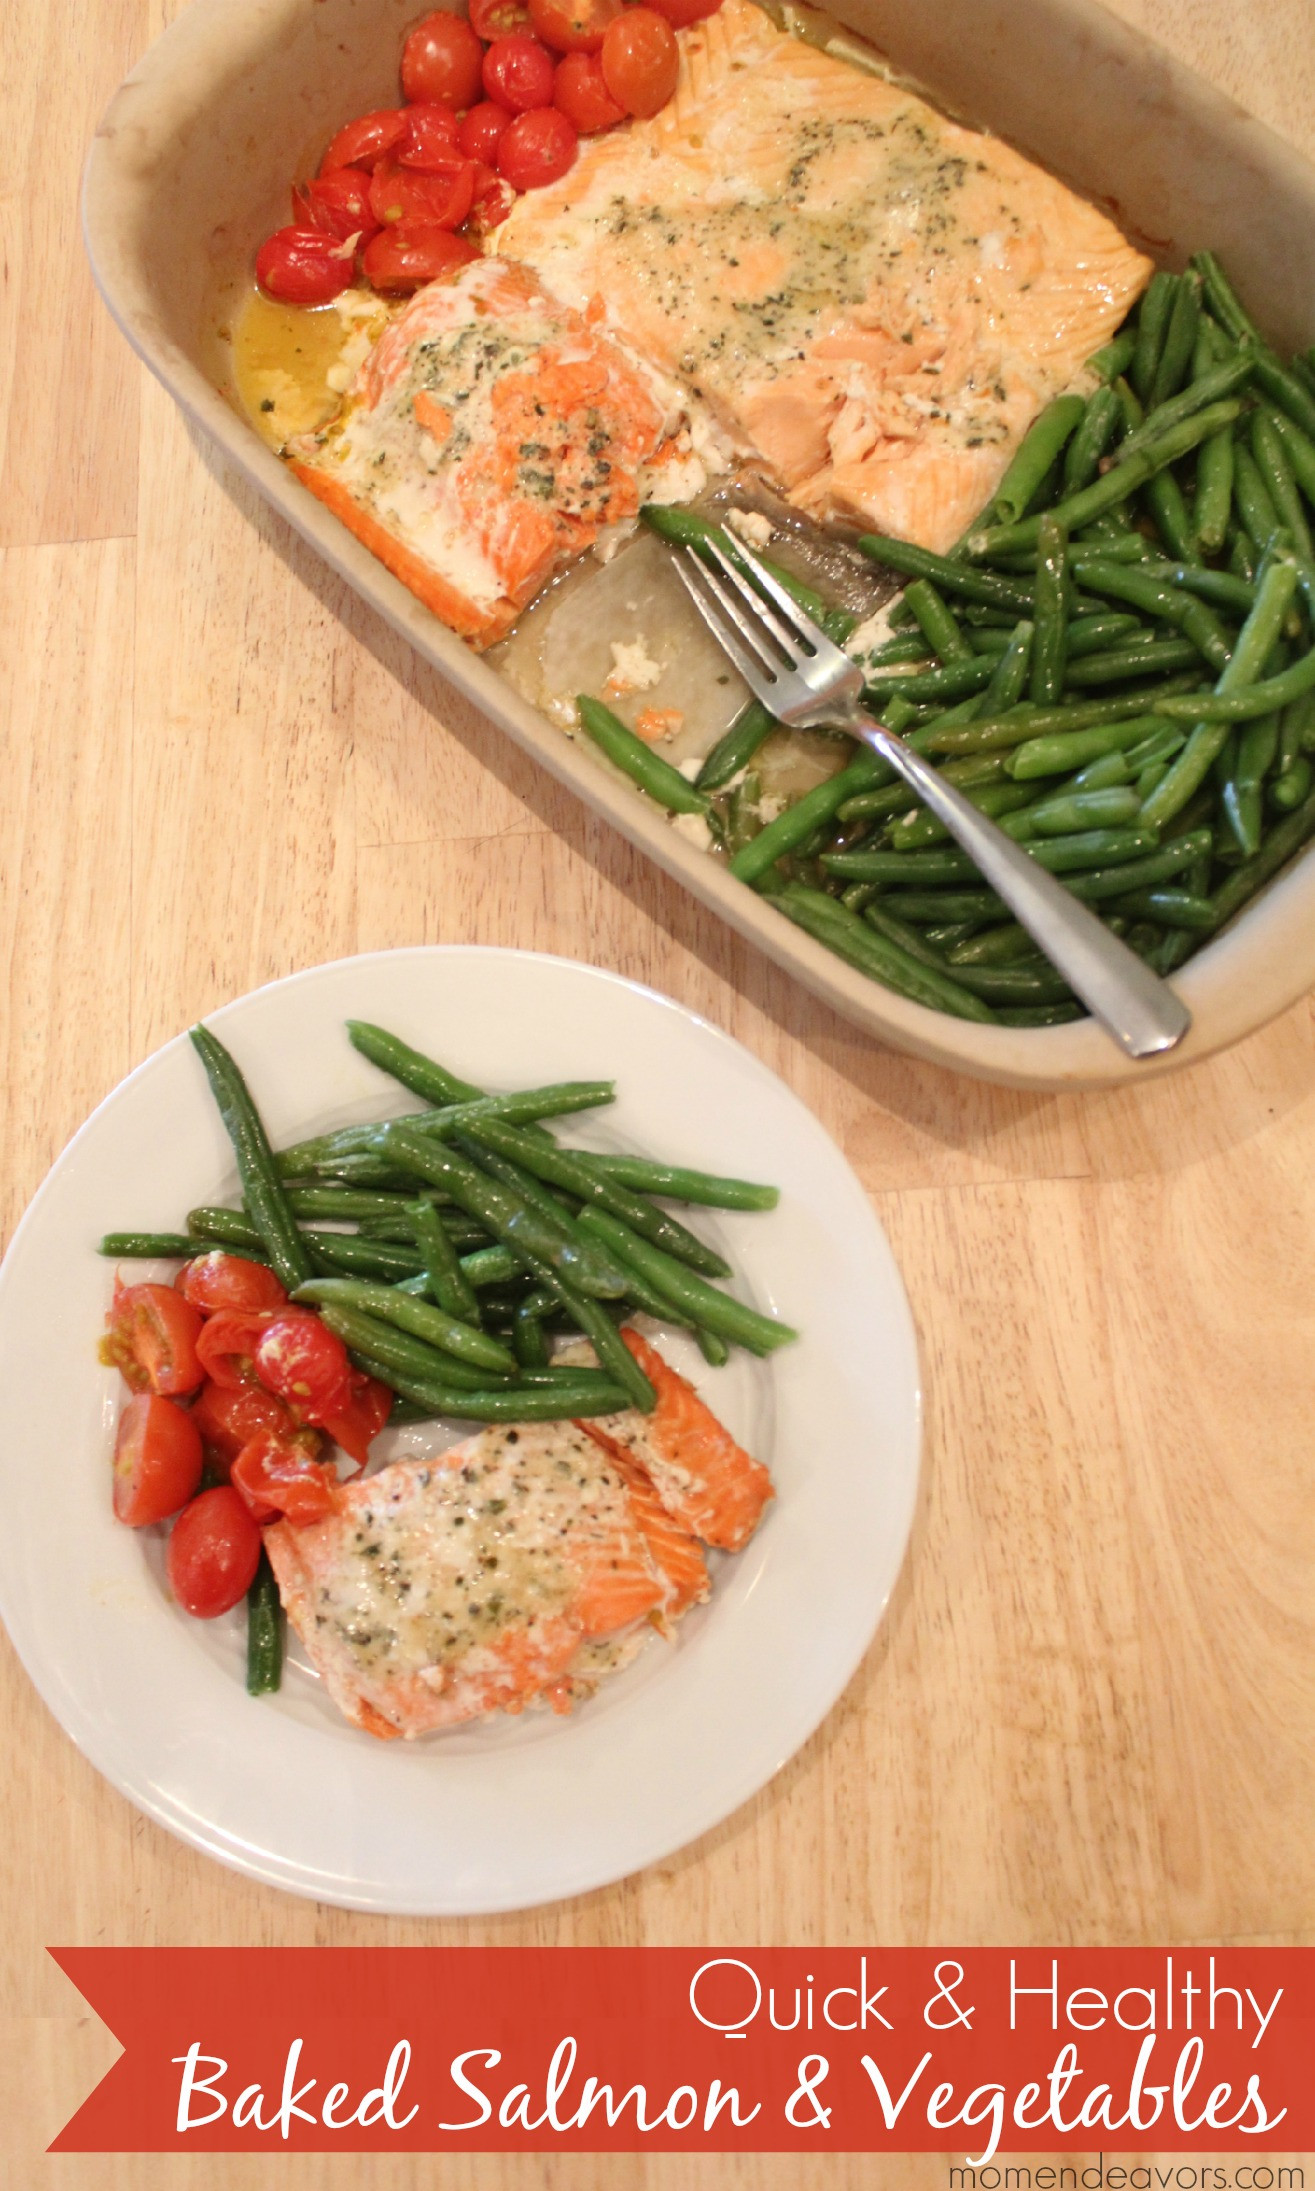 Quick And Easy Healthy Dinner Recipes  Quick & Healthy Recipe e Pan Baked Salmon & Ve ables